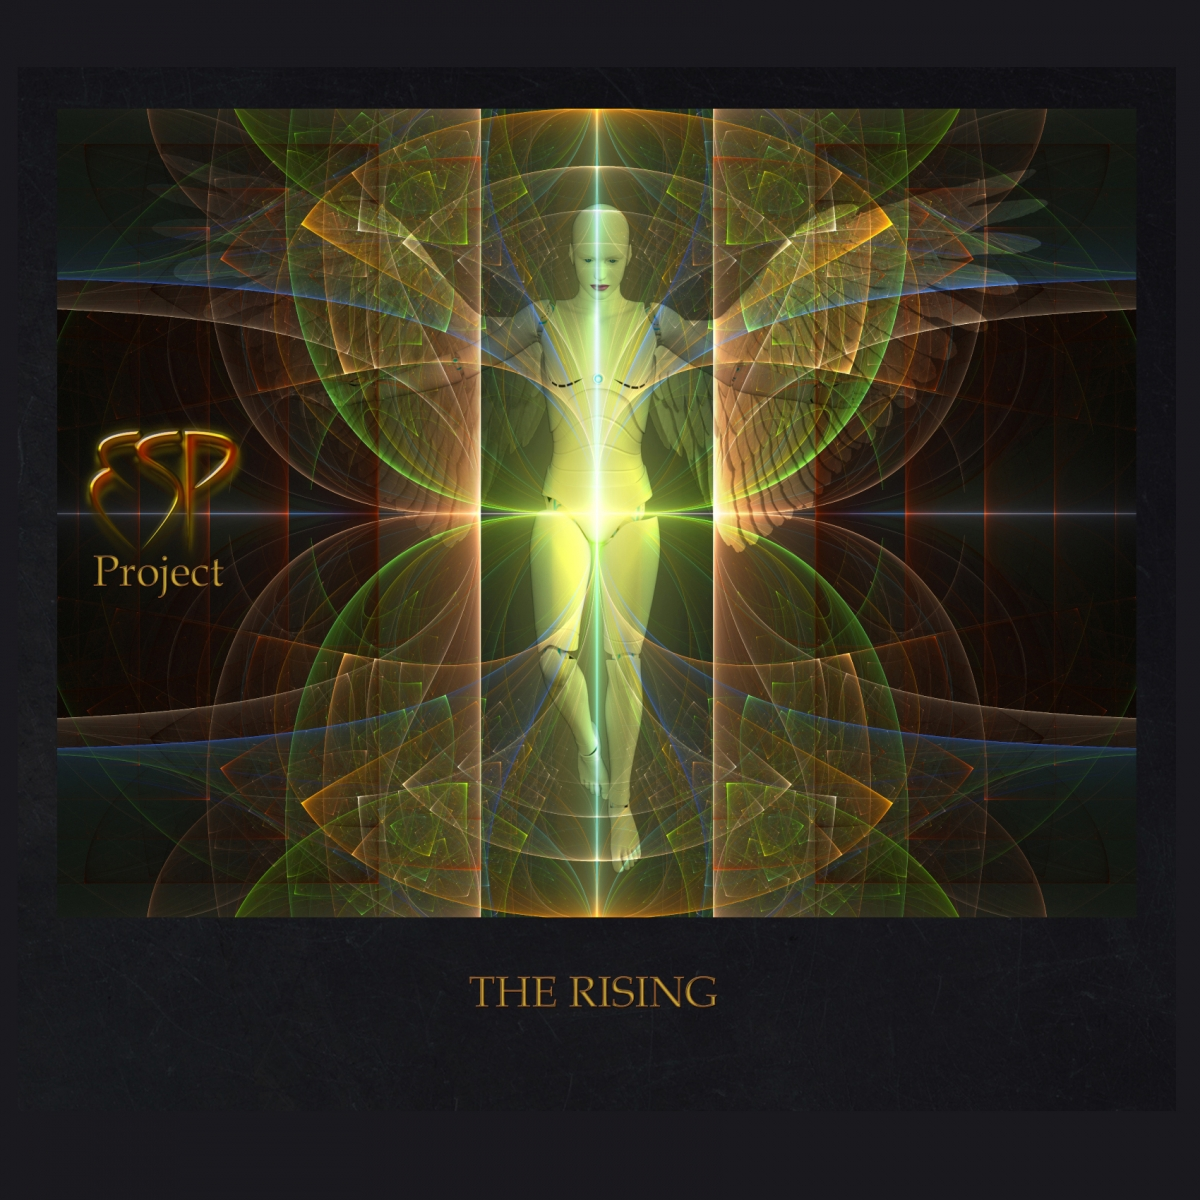 The Rising - ESP Project - 2019